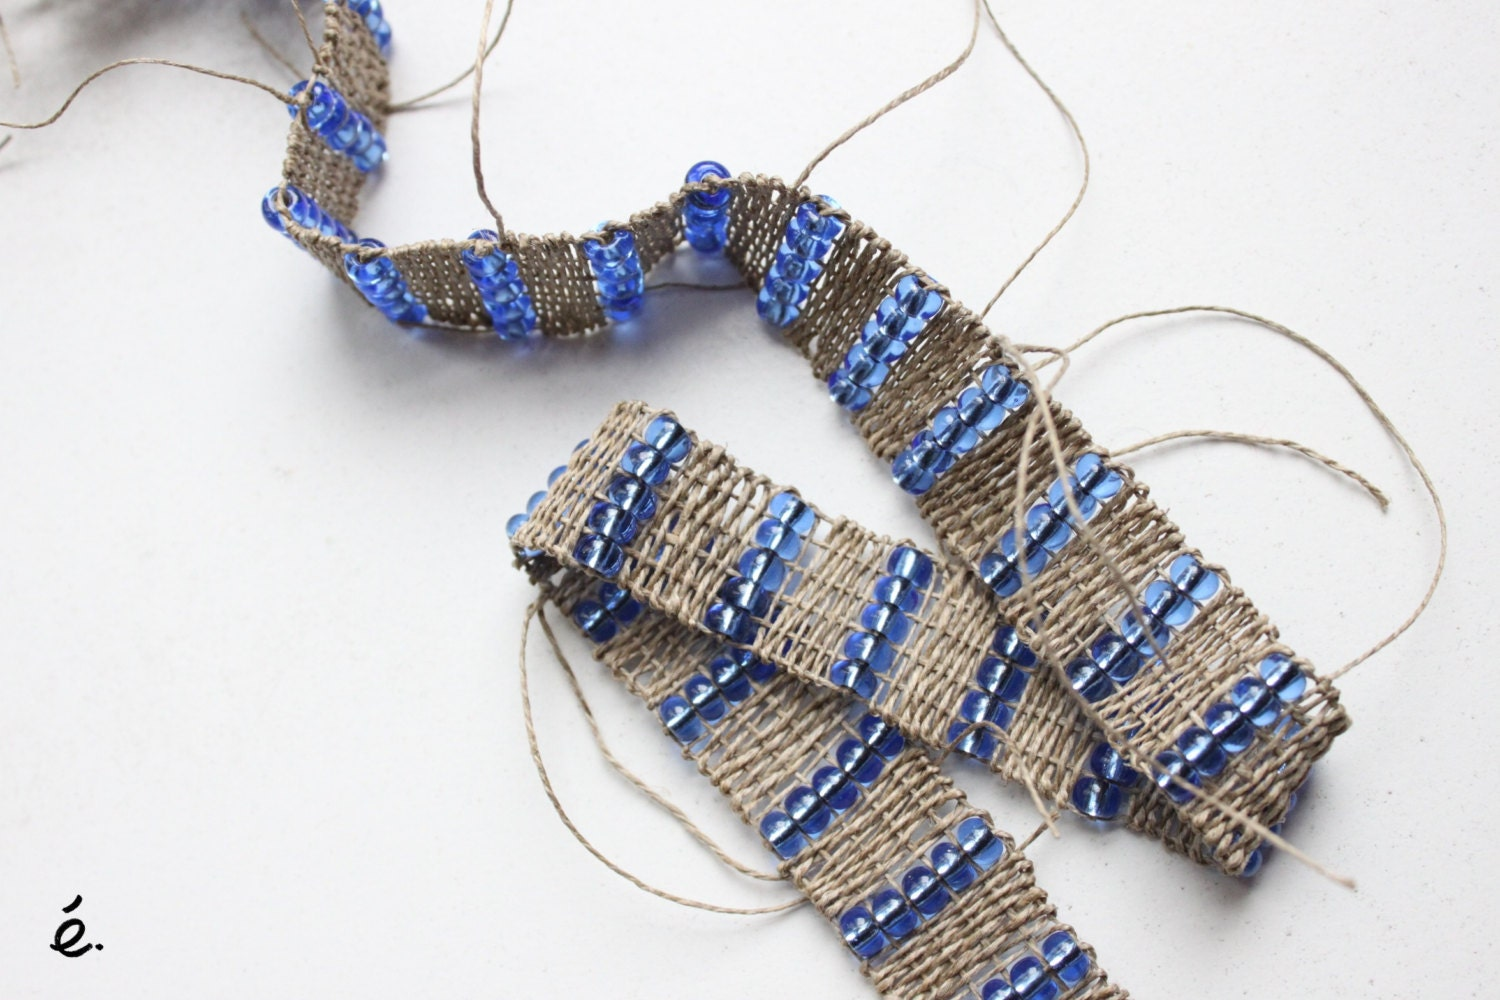 Woven trim binding border - handwoven tape - glassbeads and hemp weaving - woven trim - woven ribbon - MADE TO ORDER - AtelierCreation